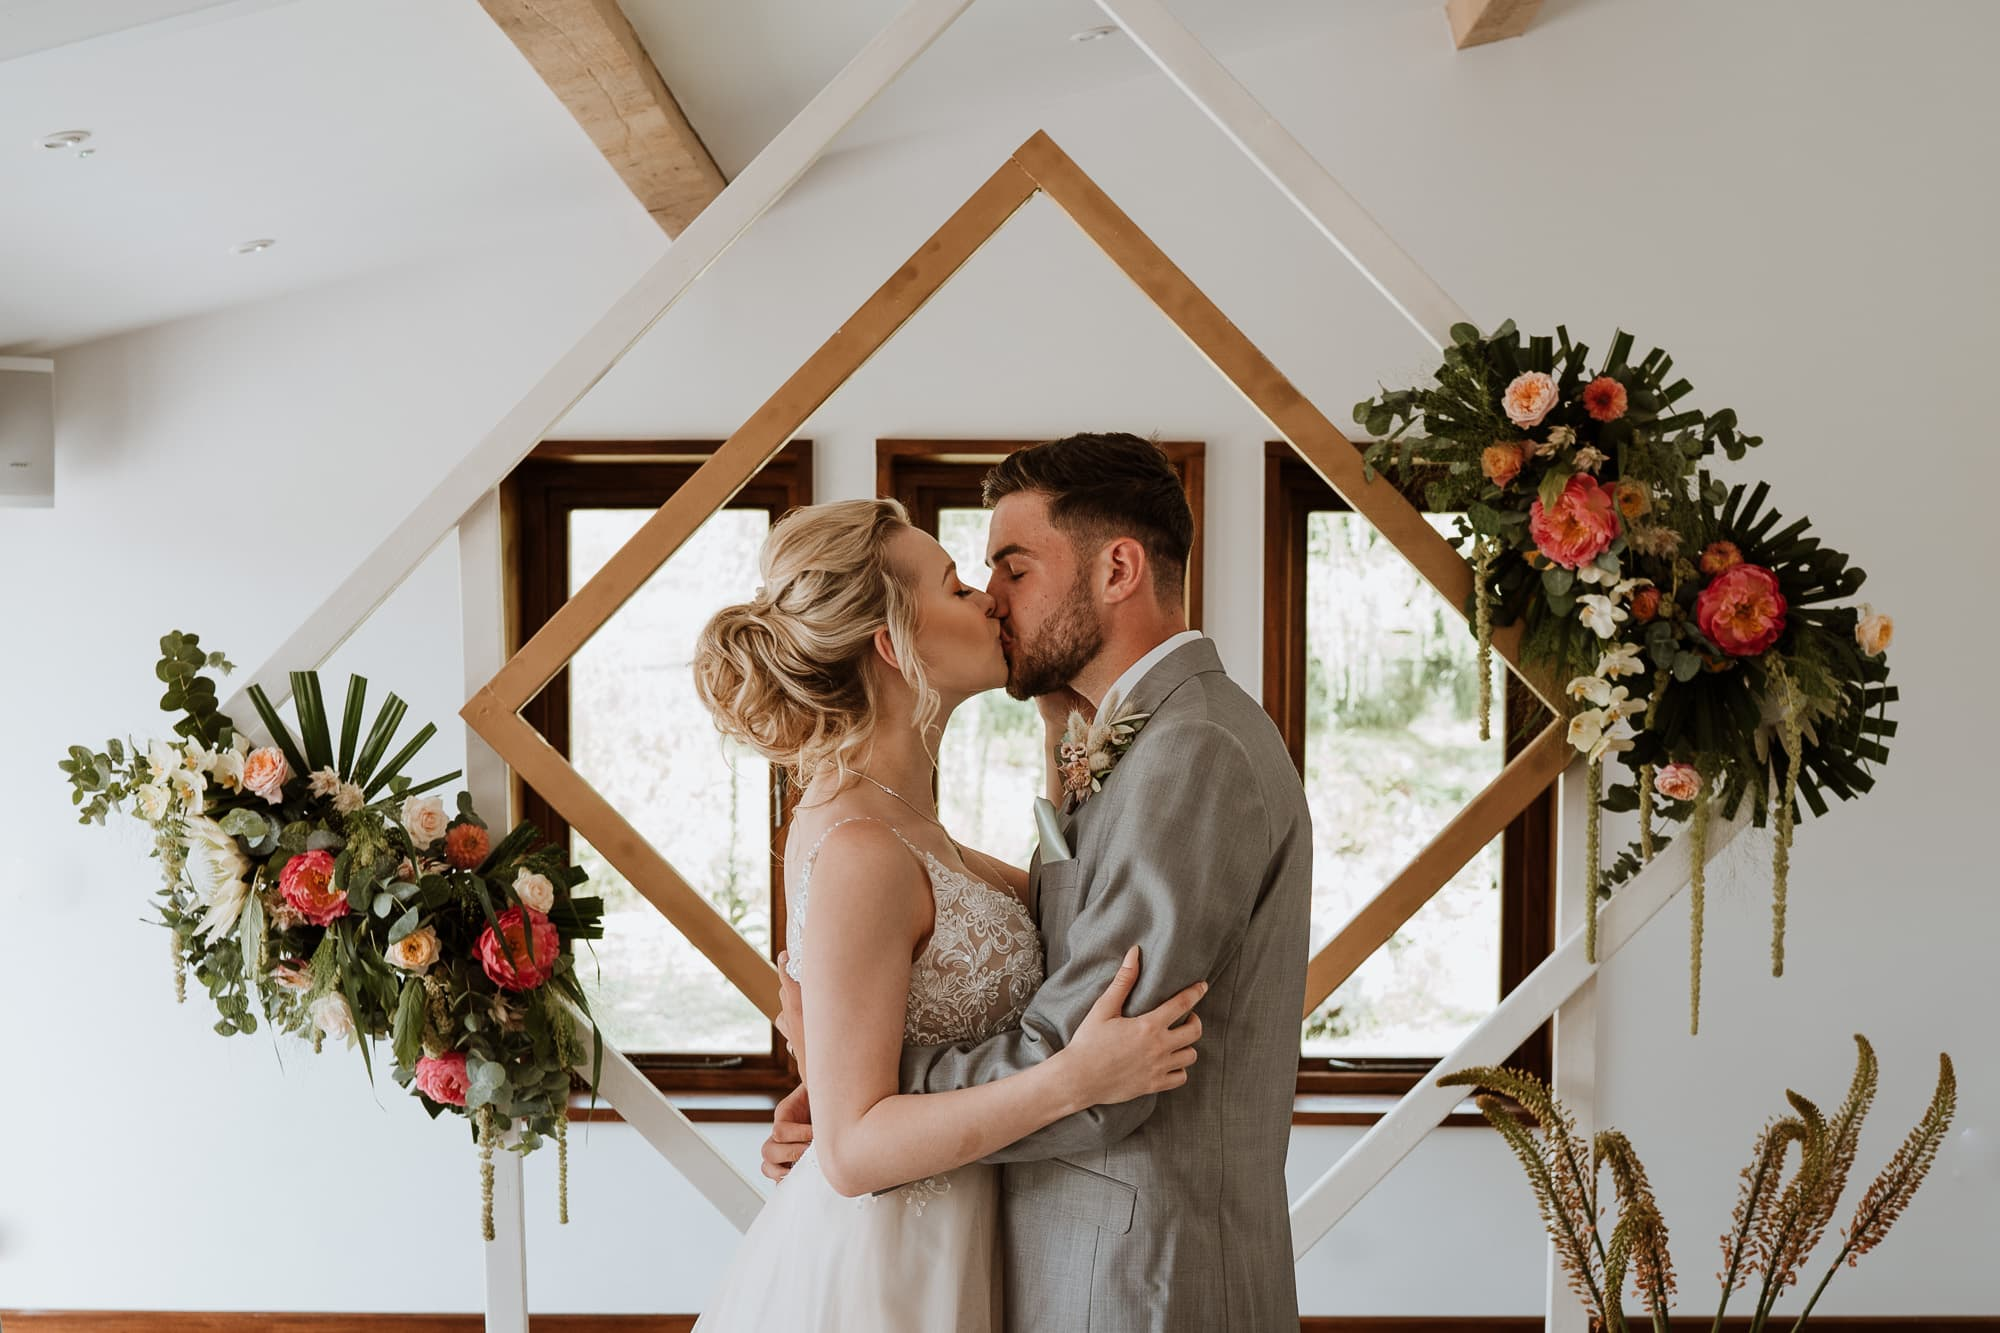 Bride and Groom kissing during ceremony at The Oak Barn, Frame Farm